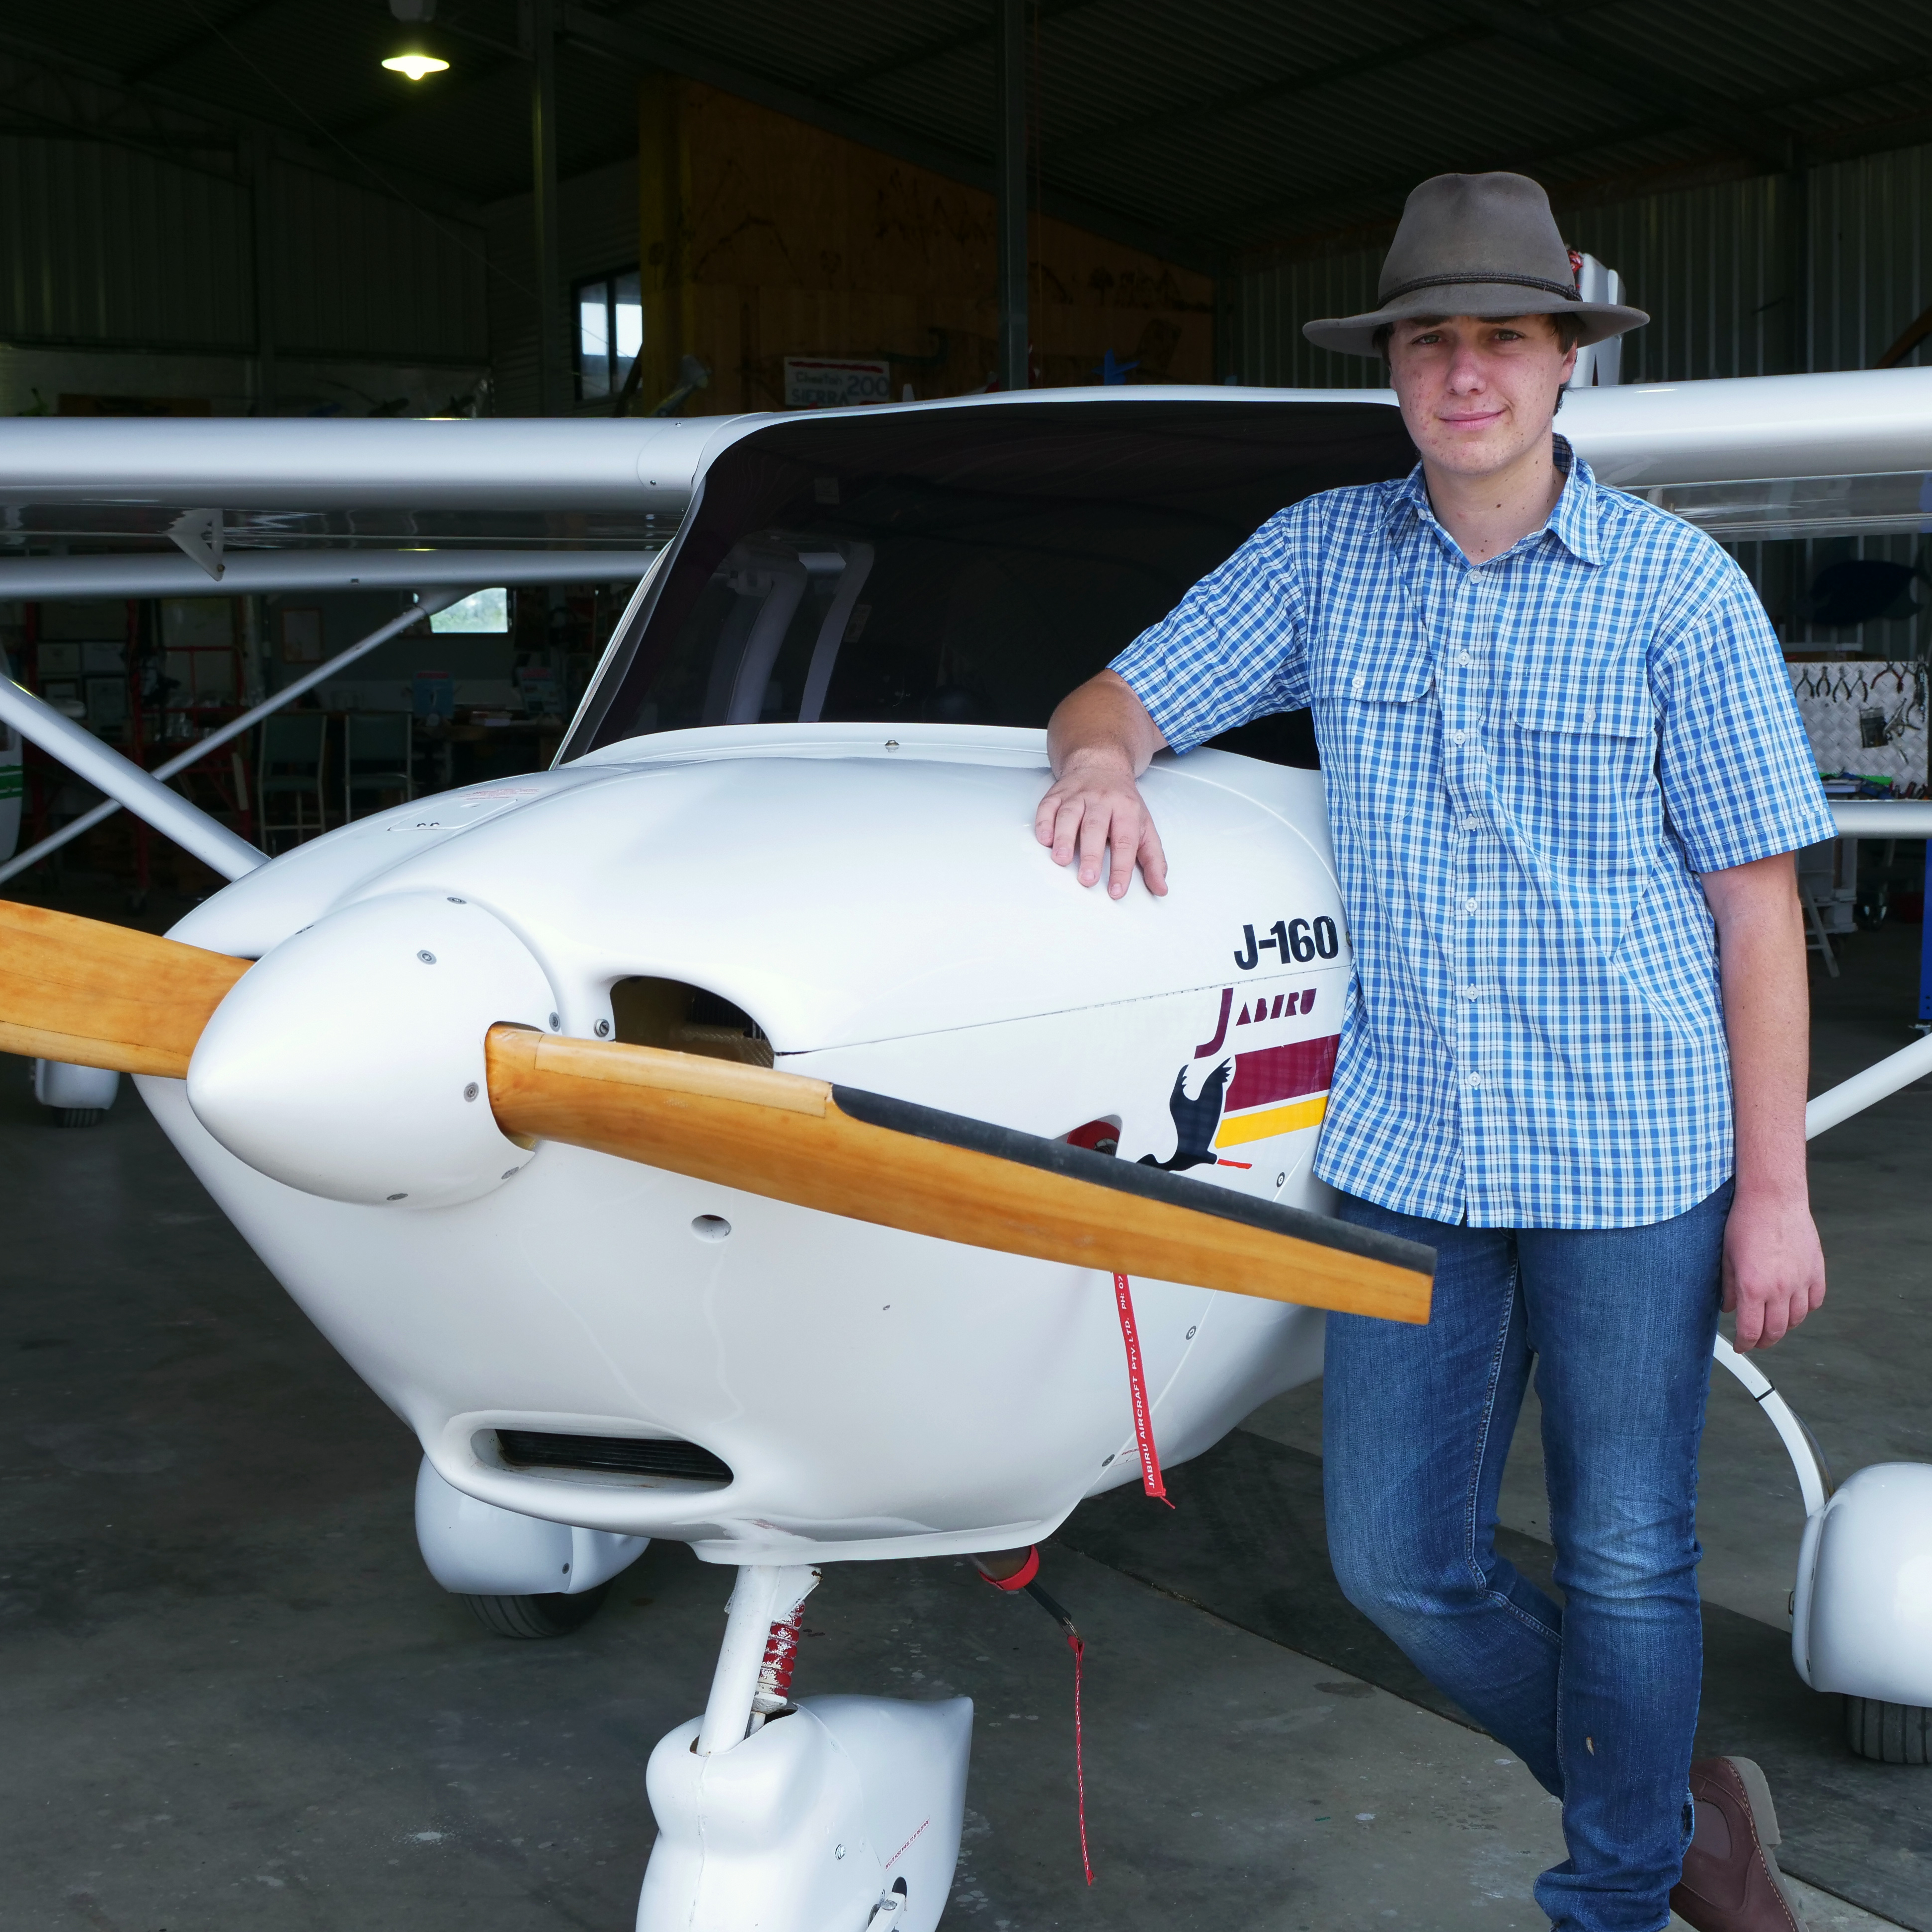 Hayden standing next to a small plane